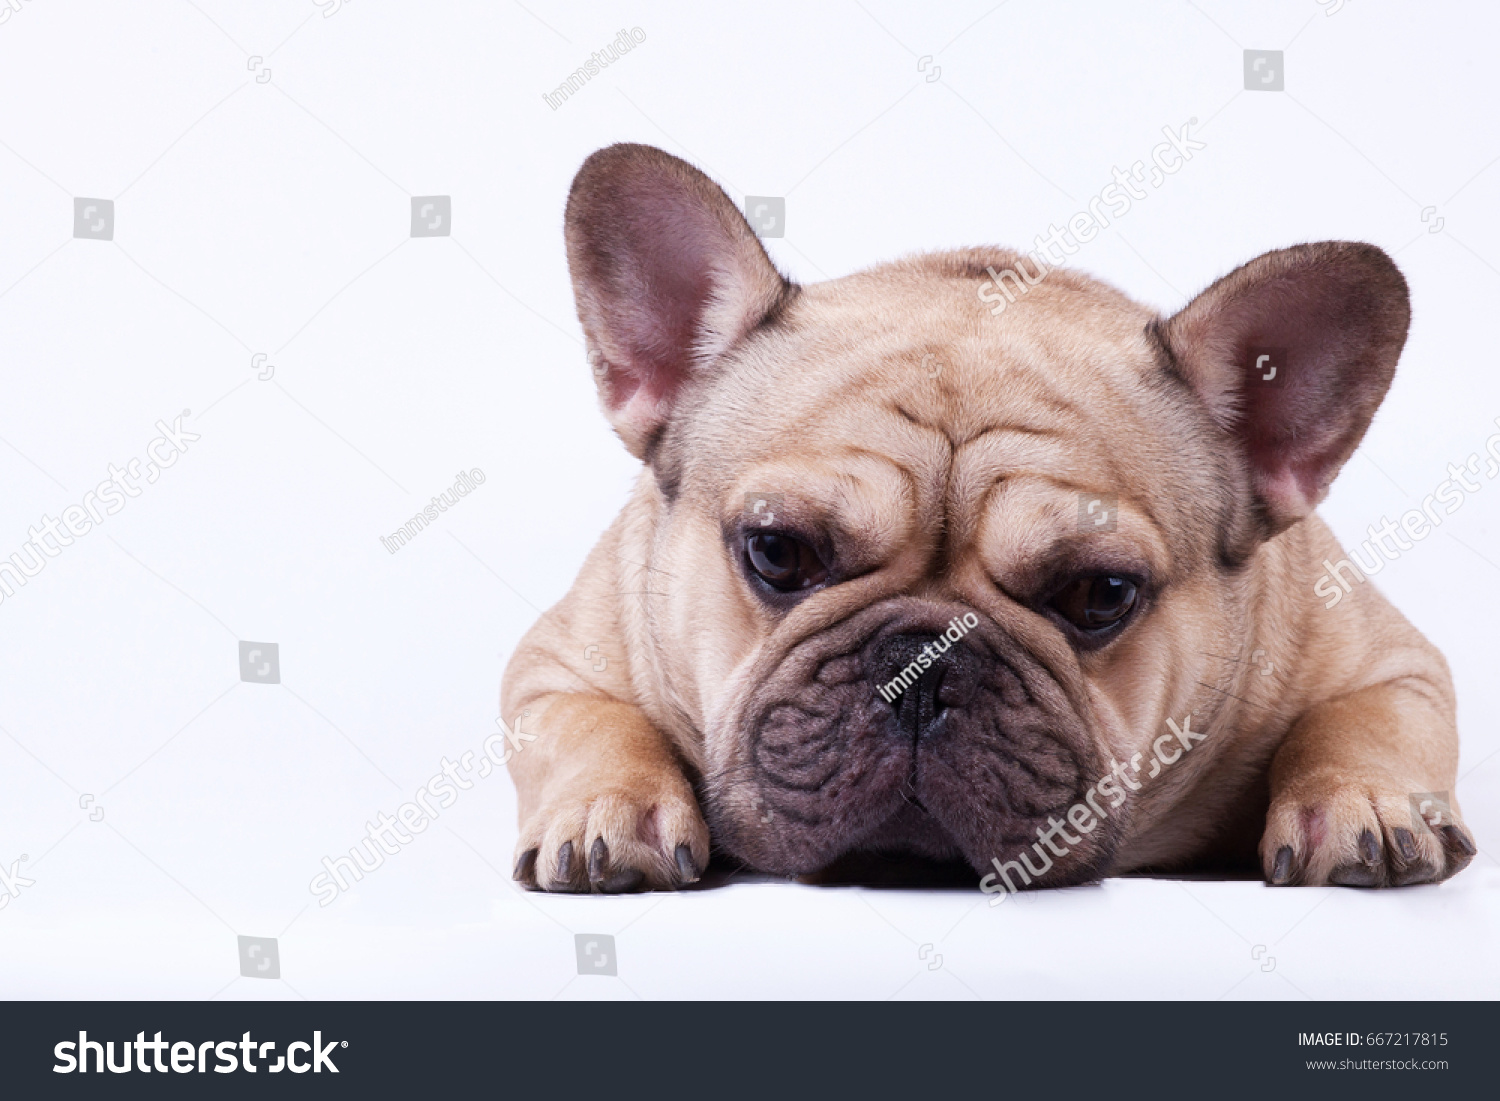 Beautiful Bulldog Brown Adorable Dog - stock-photo-adorable-fawn-or-brown-french-bulldog-lying-on-white-background-667217815  Snapshot_655033  .jpg